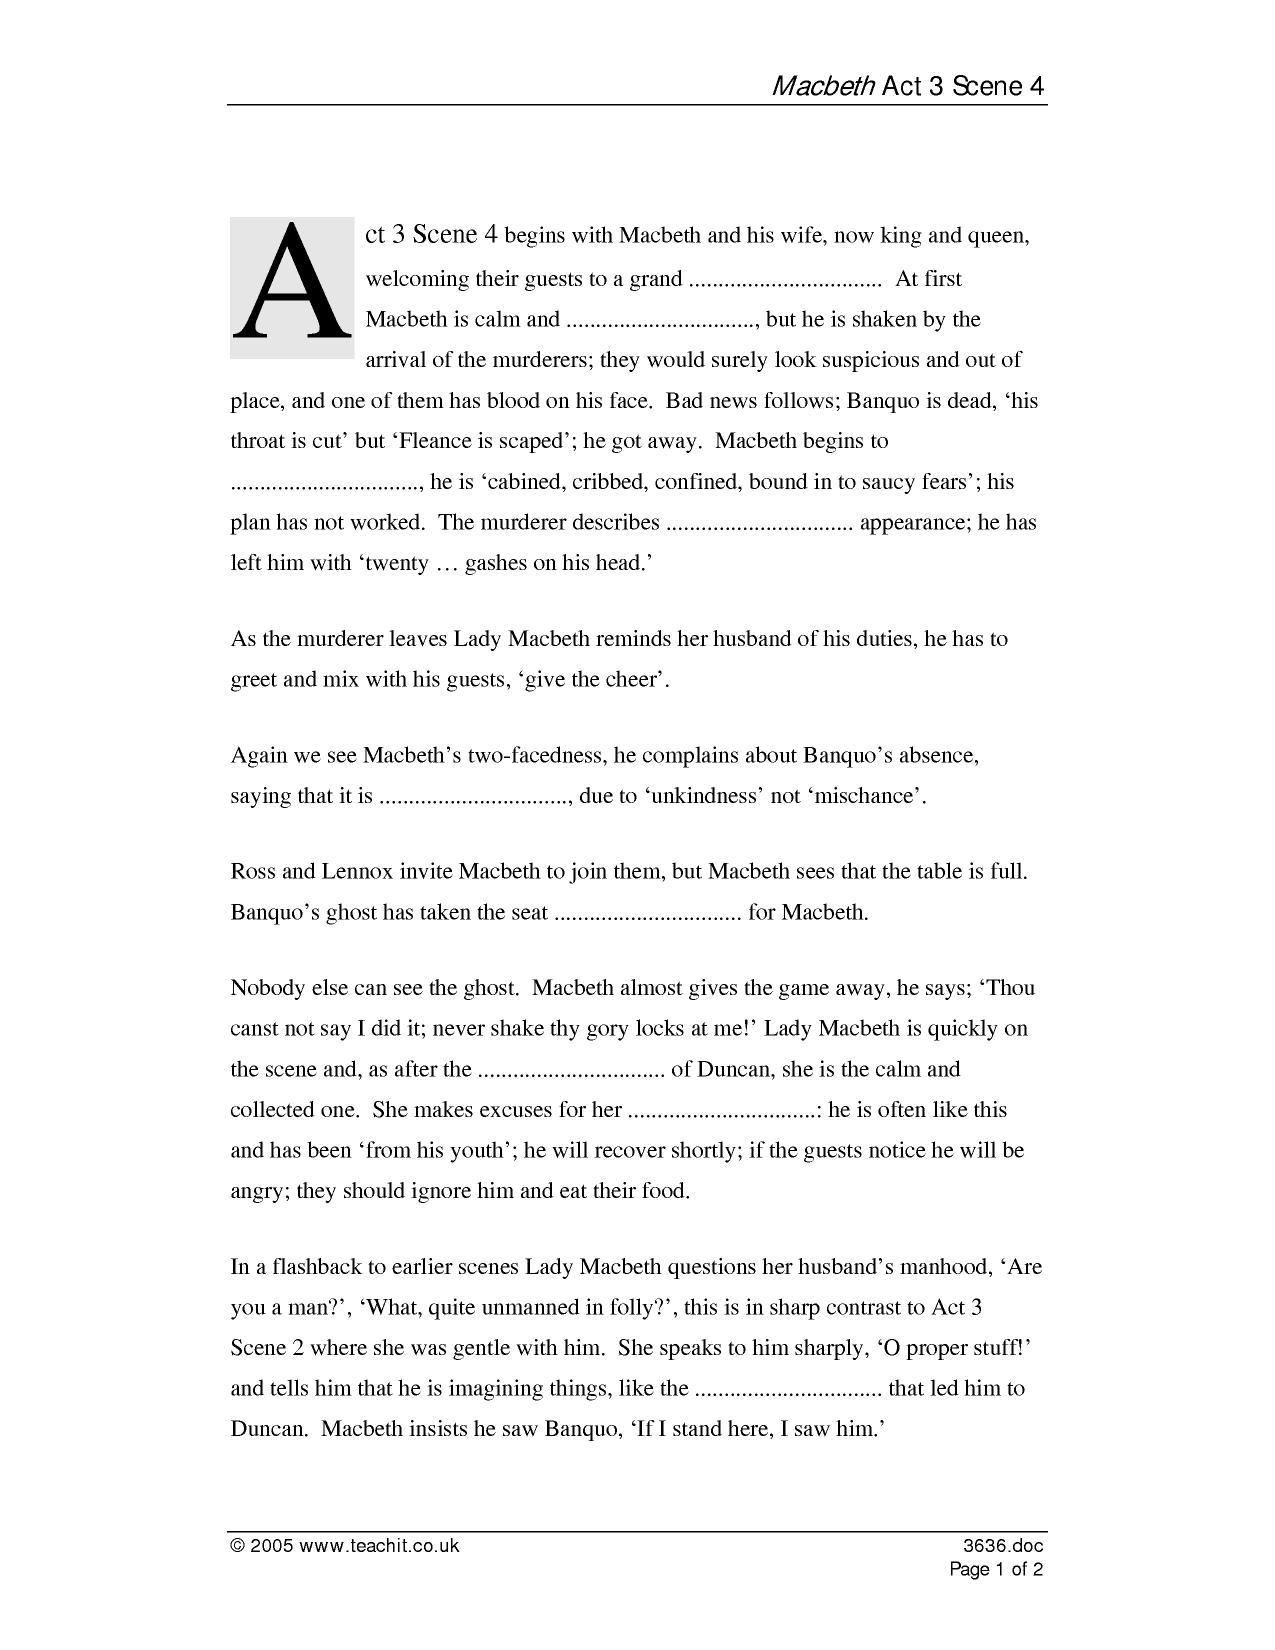 macbeth essay on masculinity Lady macbeth is portrayed as english literature essay  print download reference this reddit this tweet lady macbeth is portrayed as english literature essay was lady macbeth a fiend.